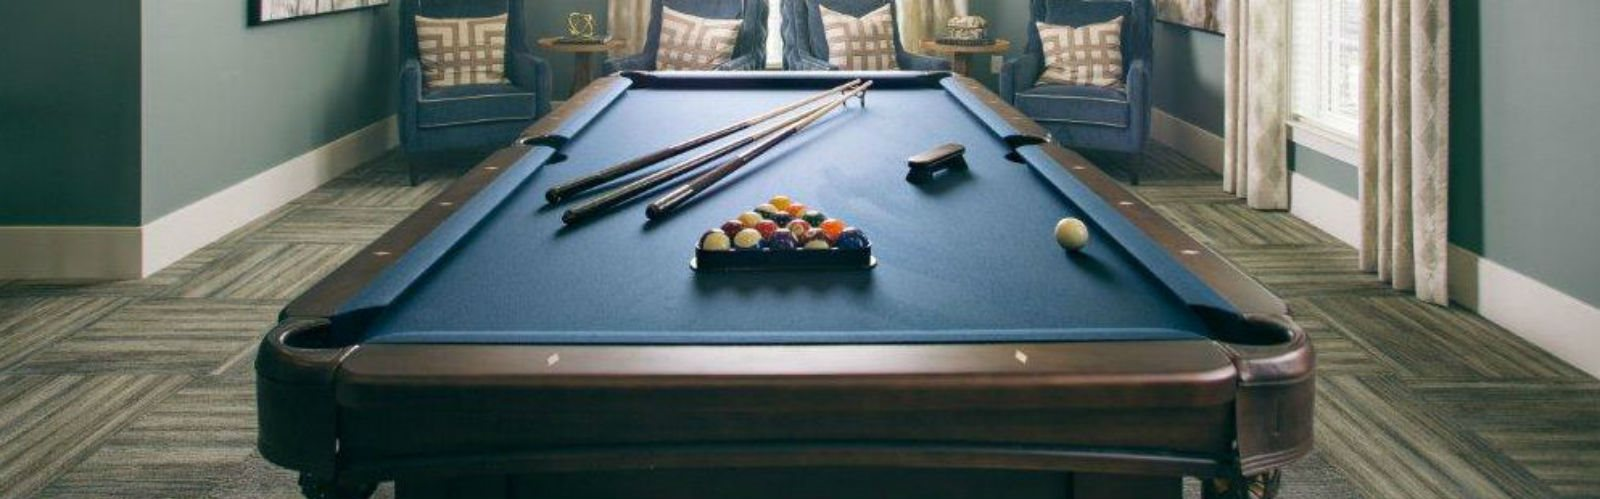 Pool table in billiards room